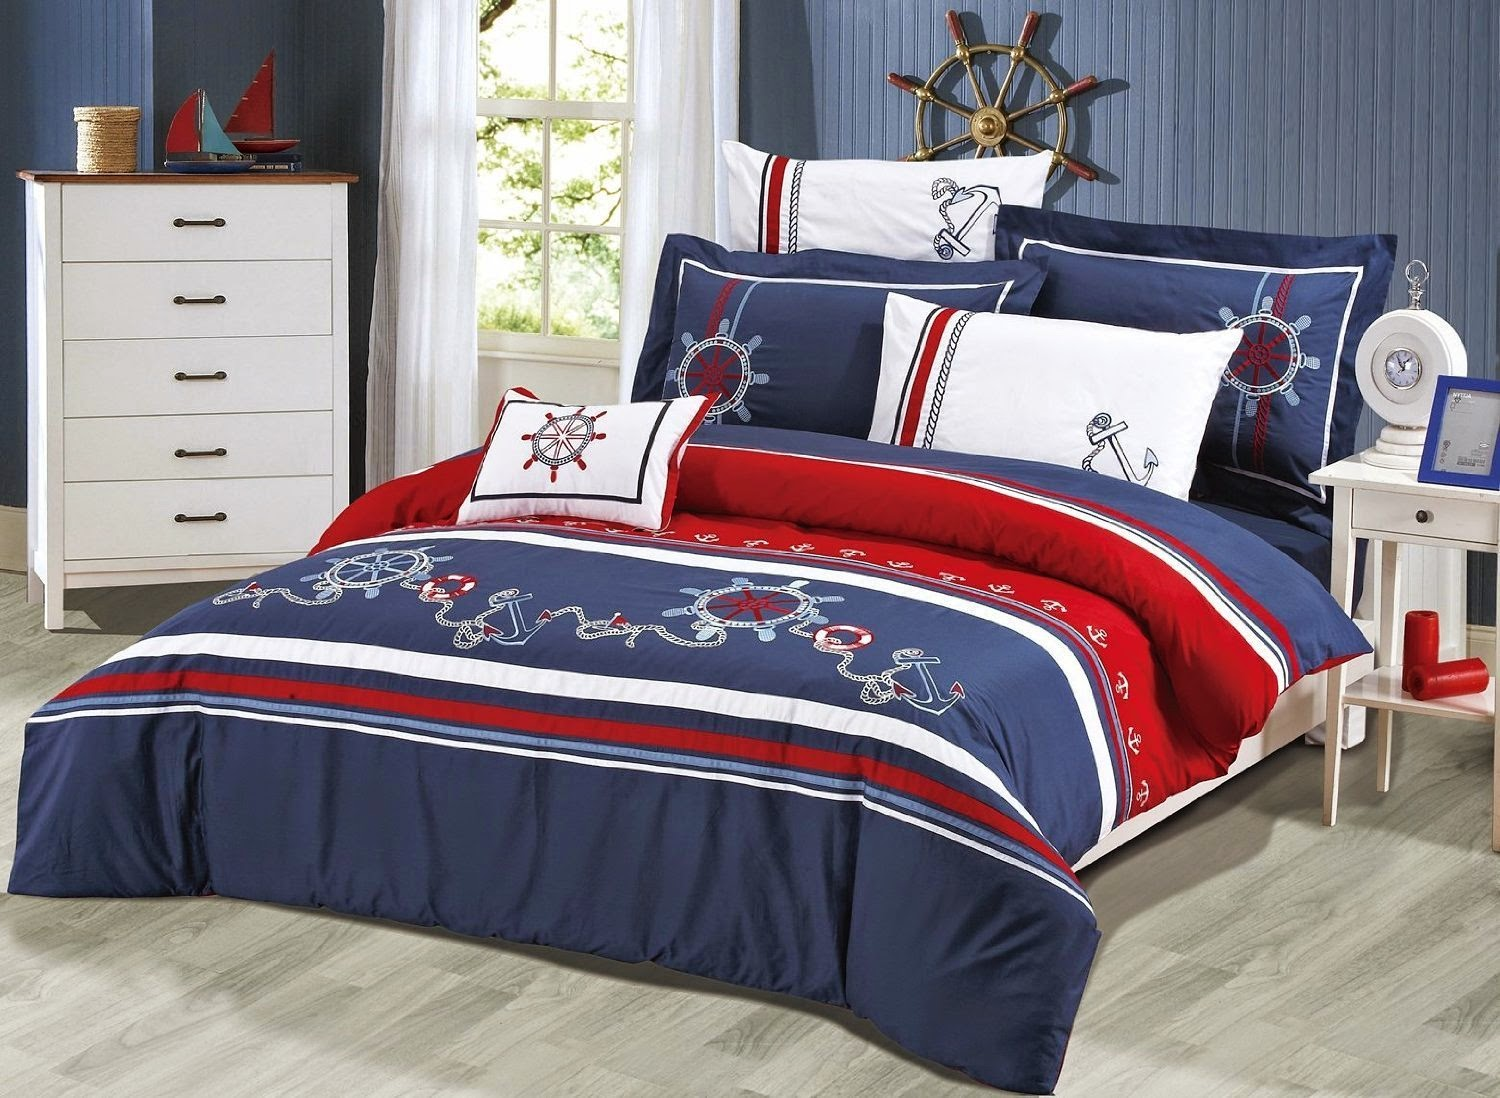 Bedroom Decor Ideas and Designs: Top Nautical Sailor ...